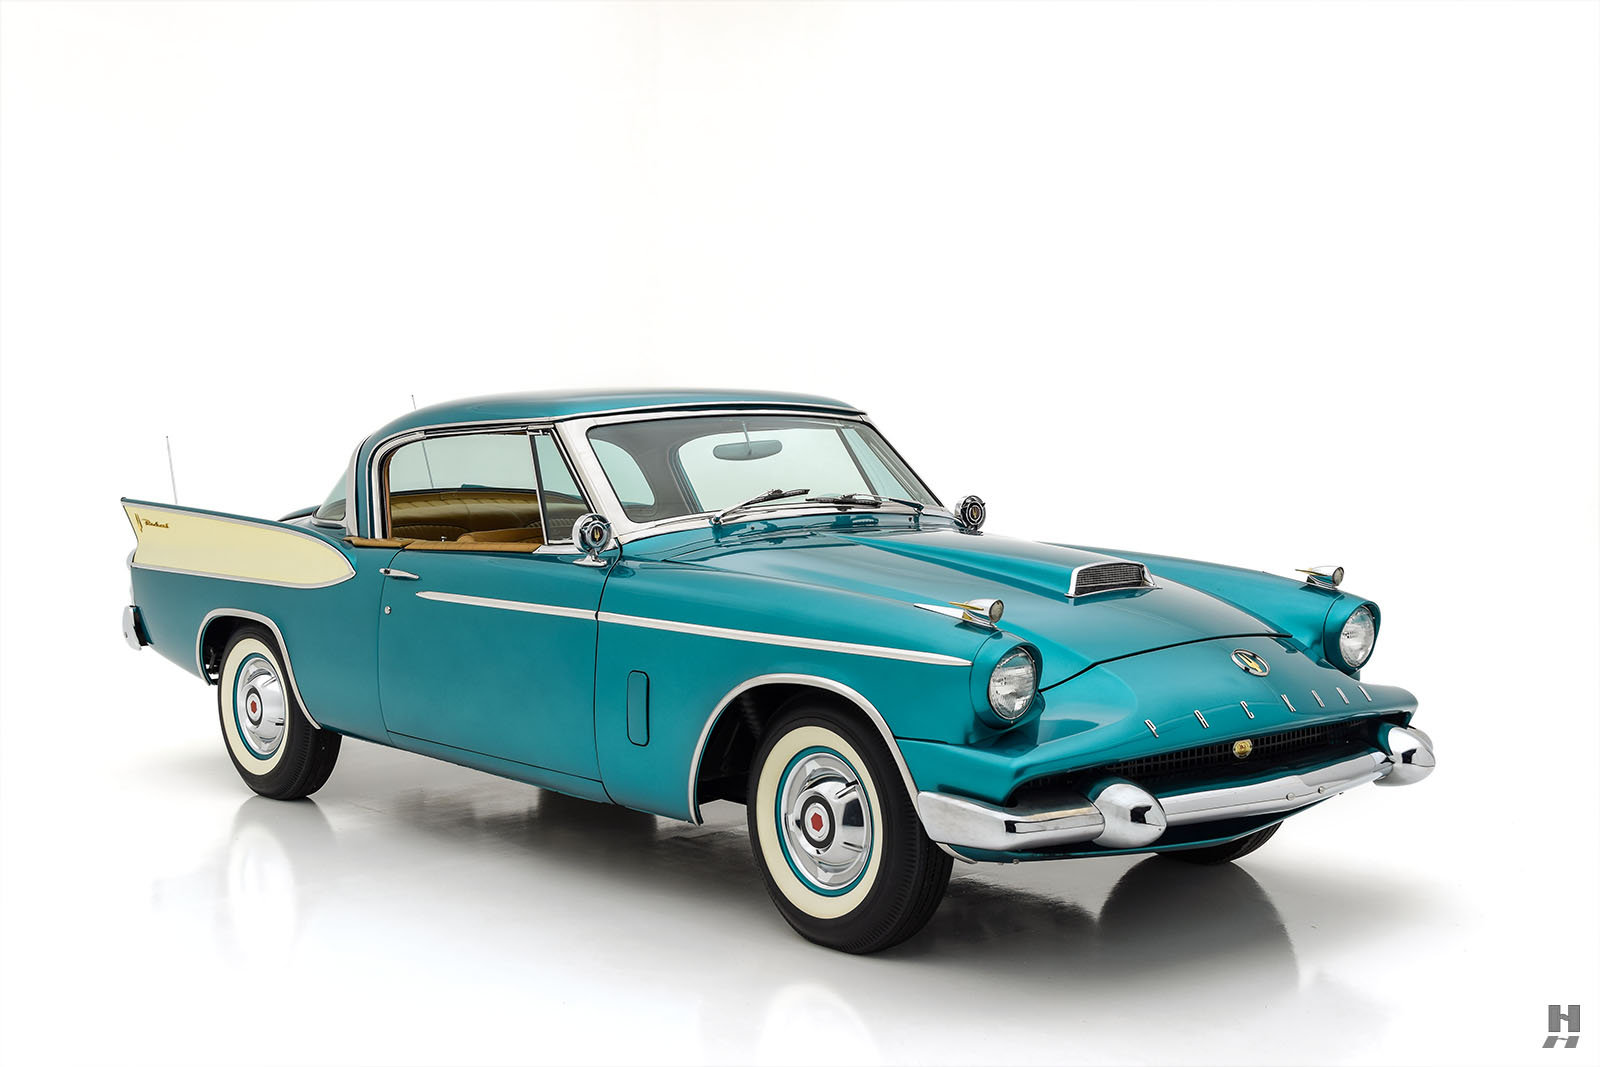 1958 PACKARD HAWK COUPE For Sale (picture 2 of 6)